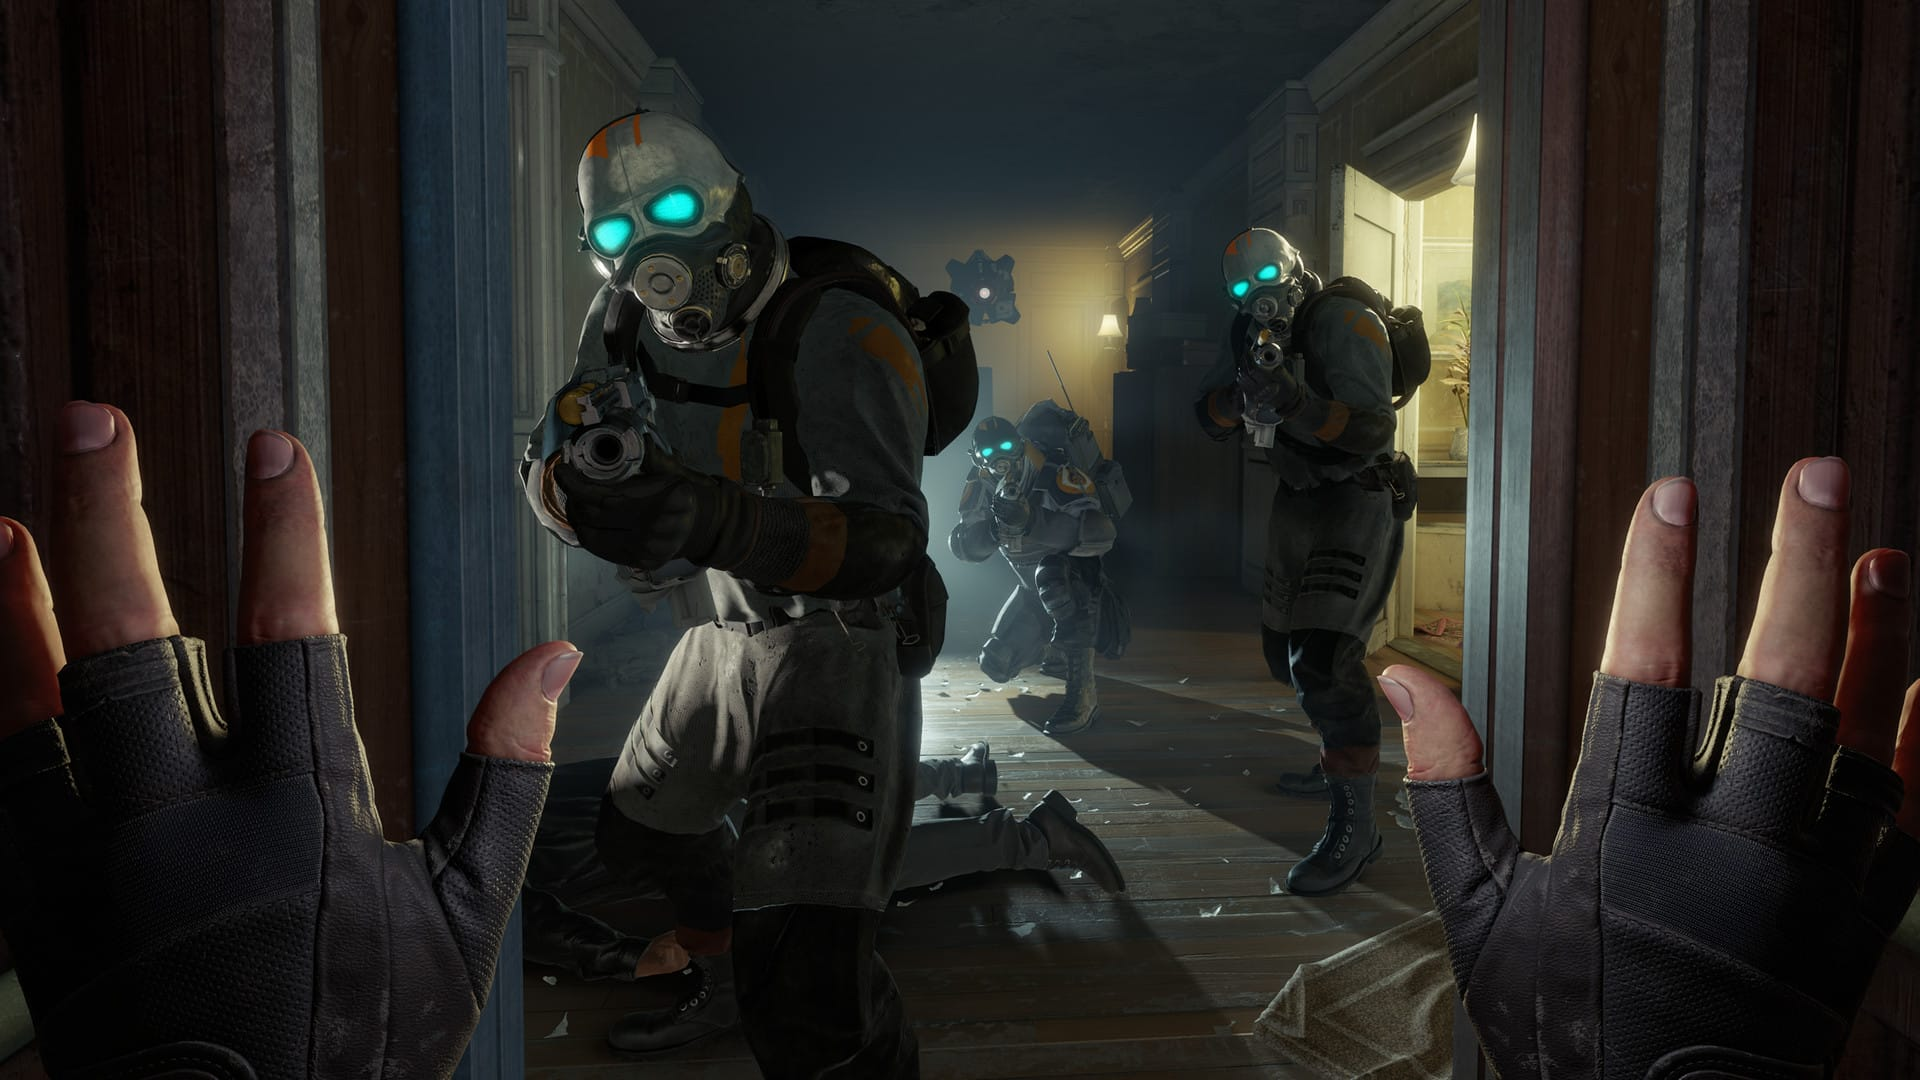 Half-Life: Alyx Is Not Receiving the Mainstream Recognition It Deserves